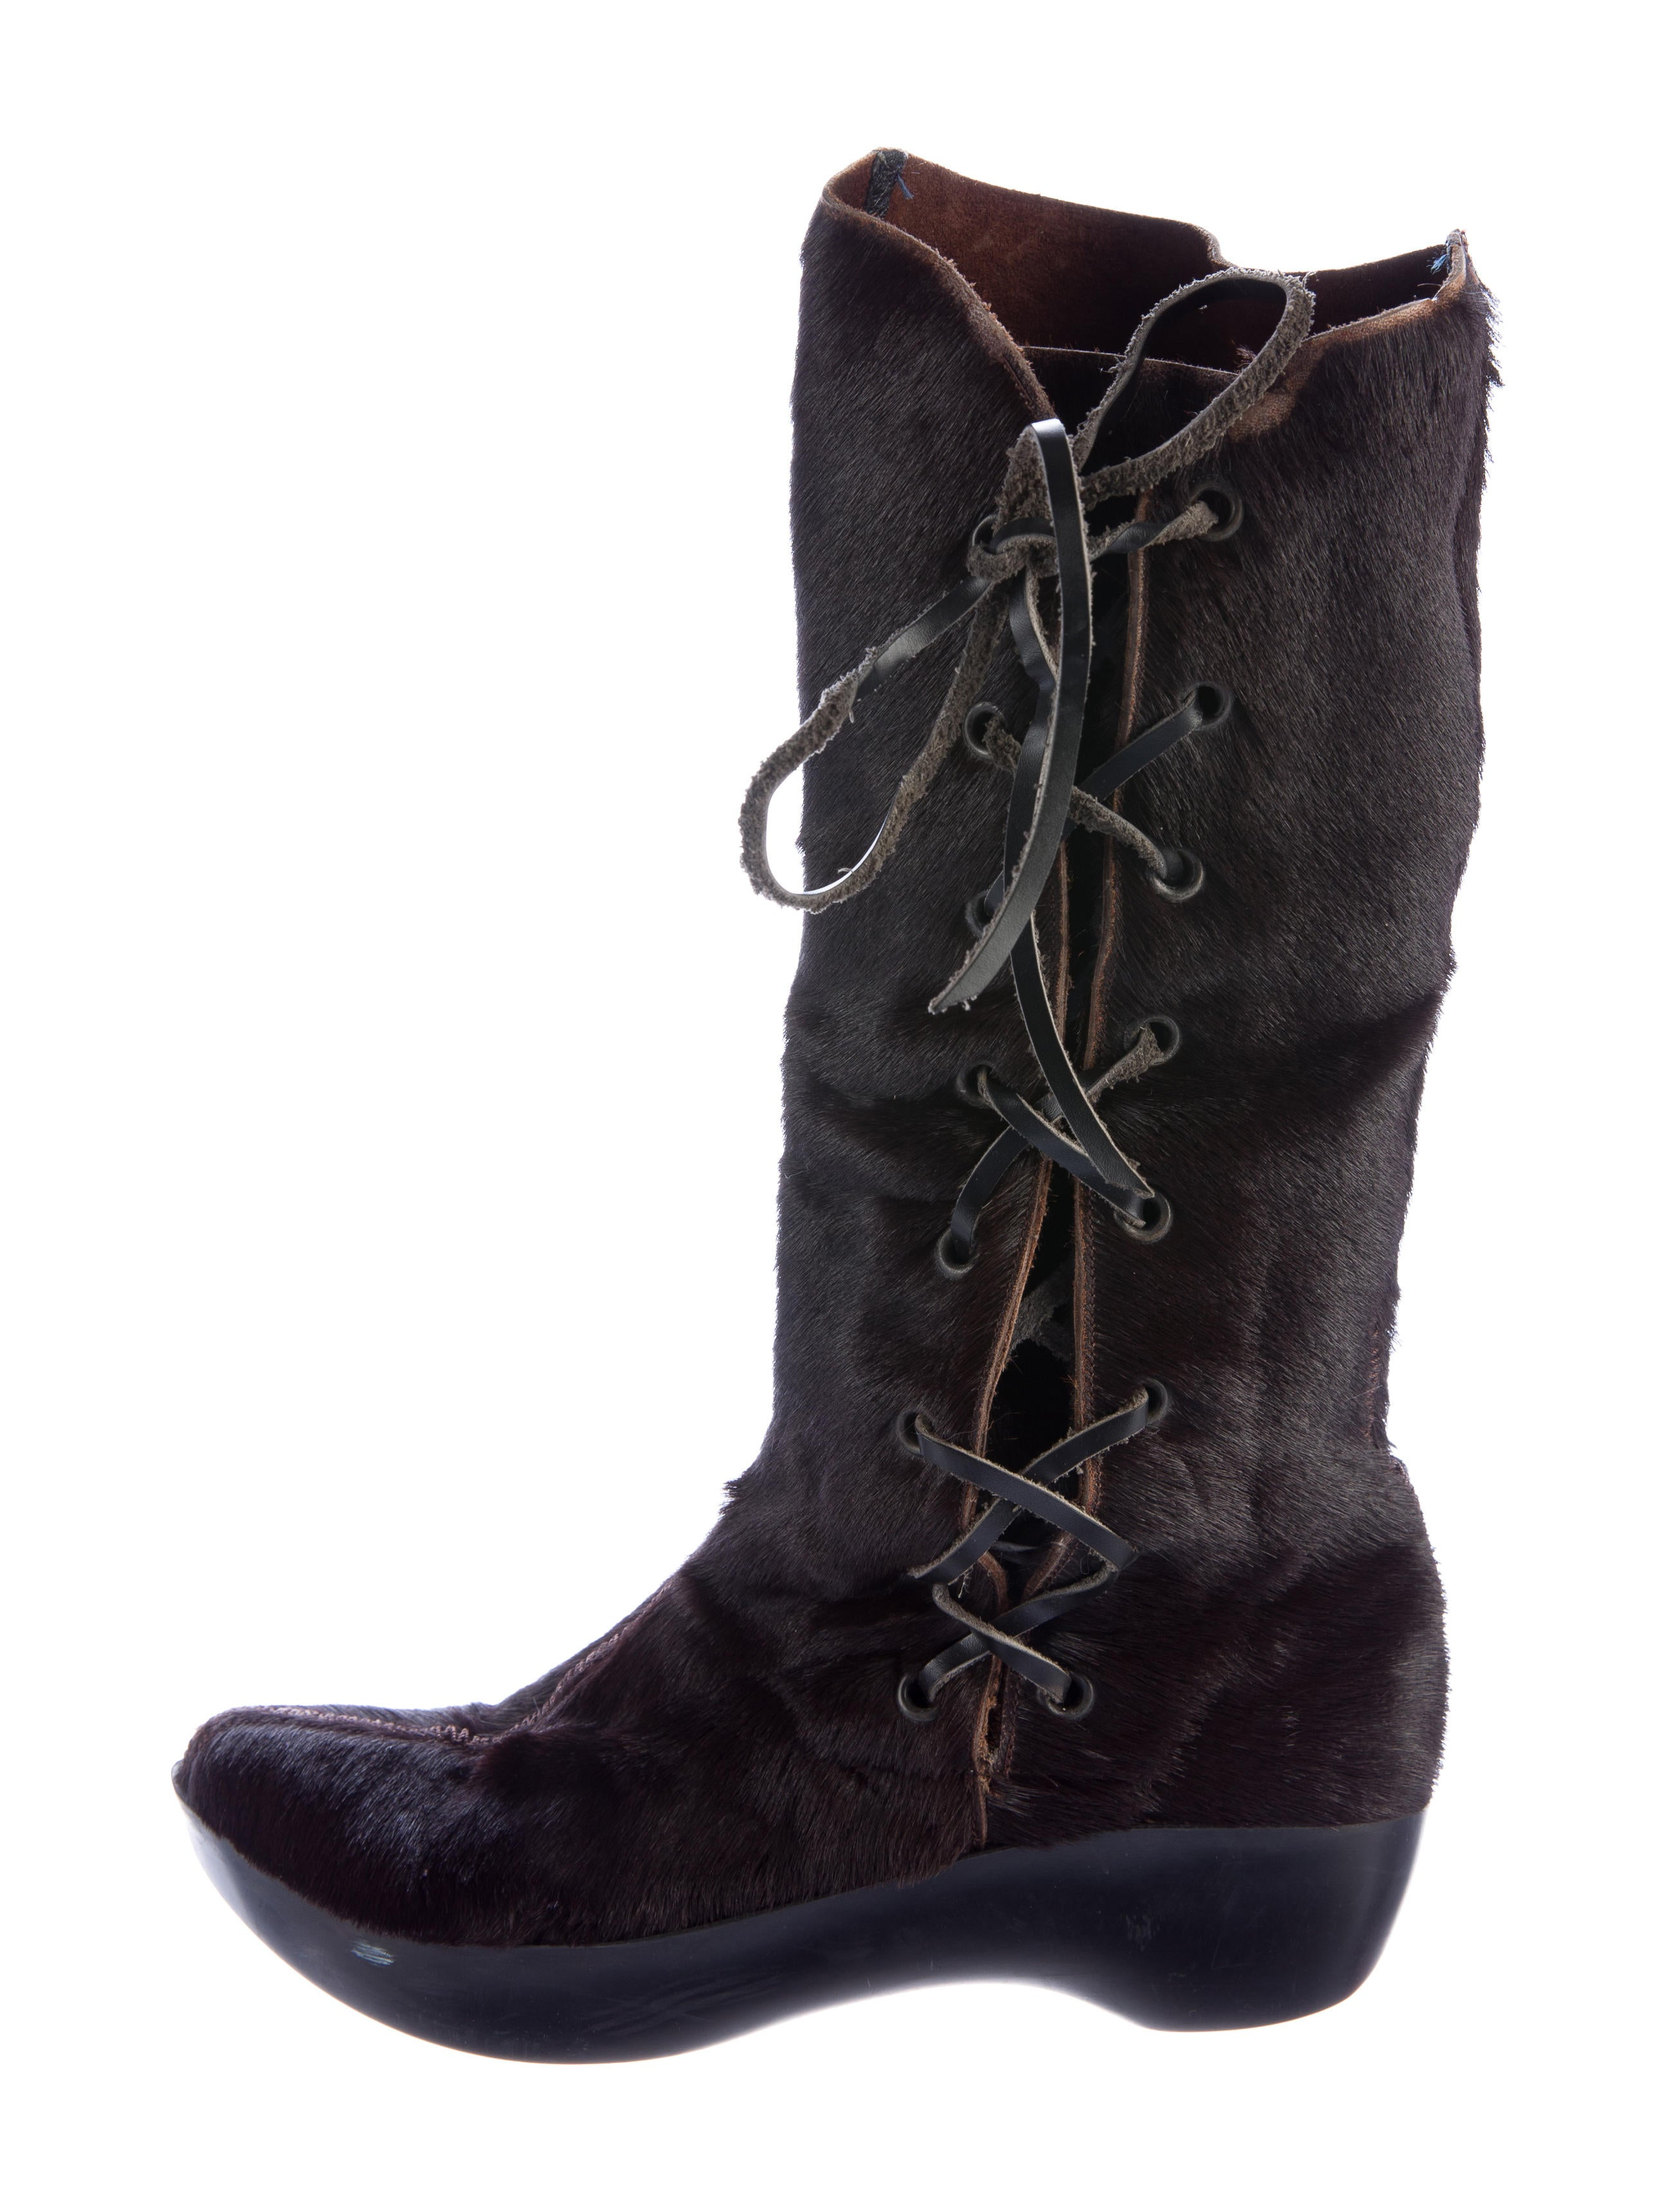 with credit card fake for sale Robert Clergerie Ponyhair Mid-Calf Boots wZtO6xGMD